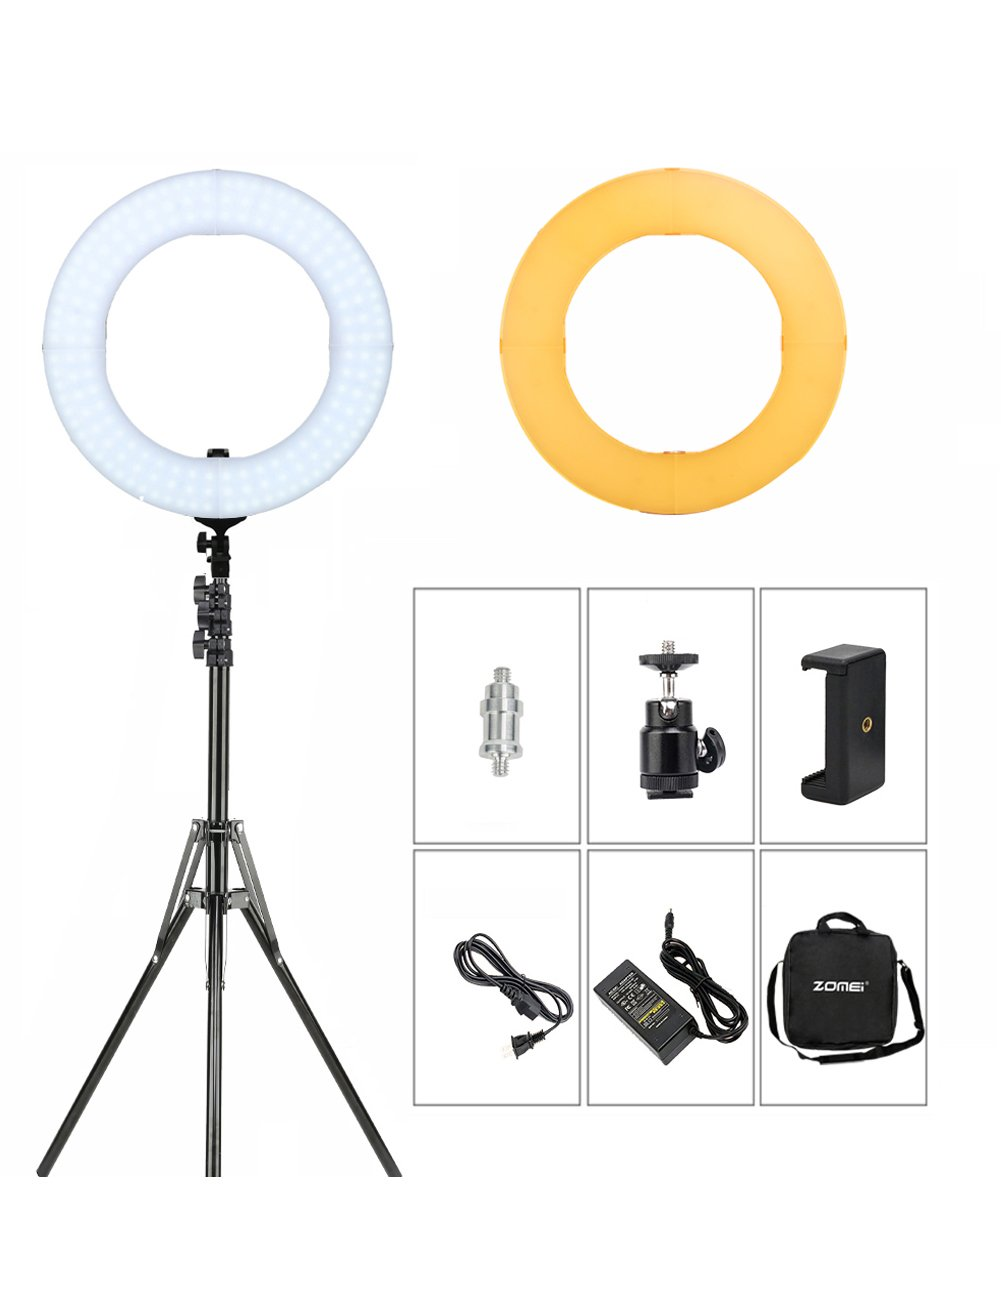 ZOMEI 14 inch LED Ring Light, Dimmable 41W 5500k Output Makeup and YouTube Video Light Professional Photography Lights with Stand, Orange Plastic Filters and Carrying Bag